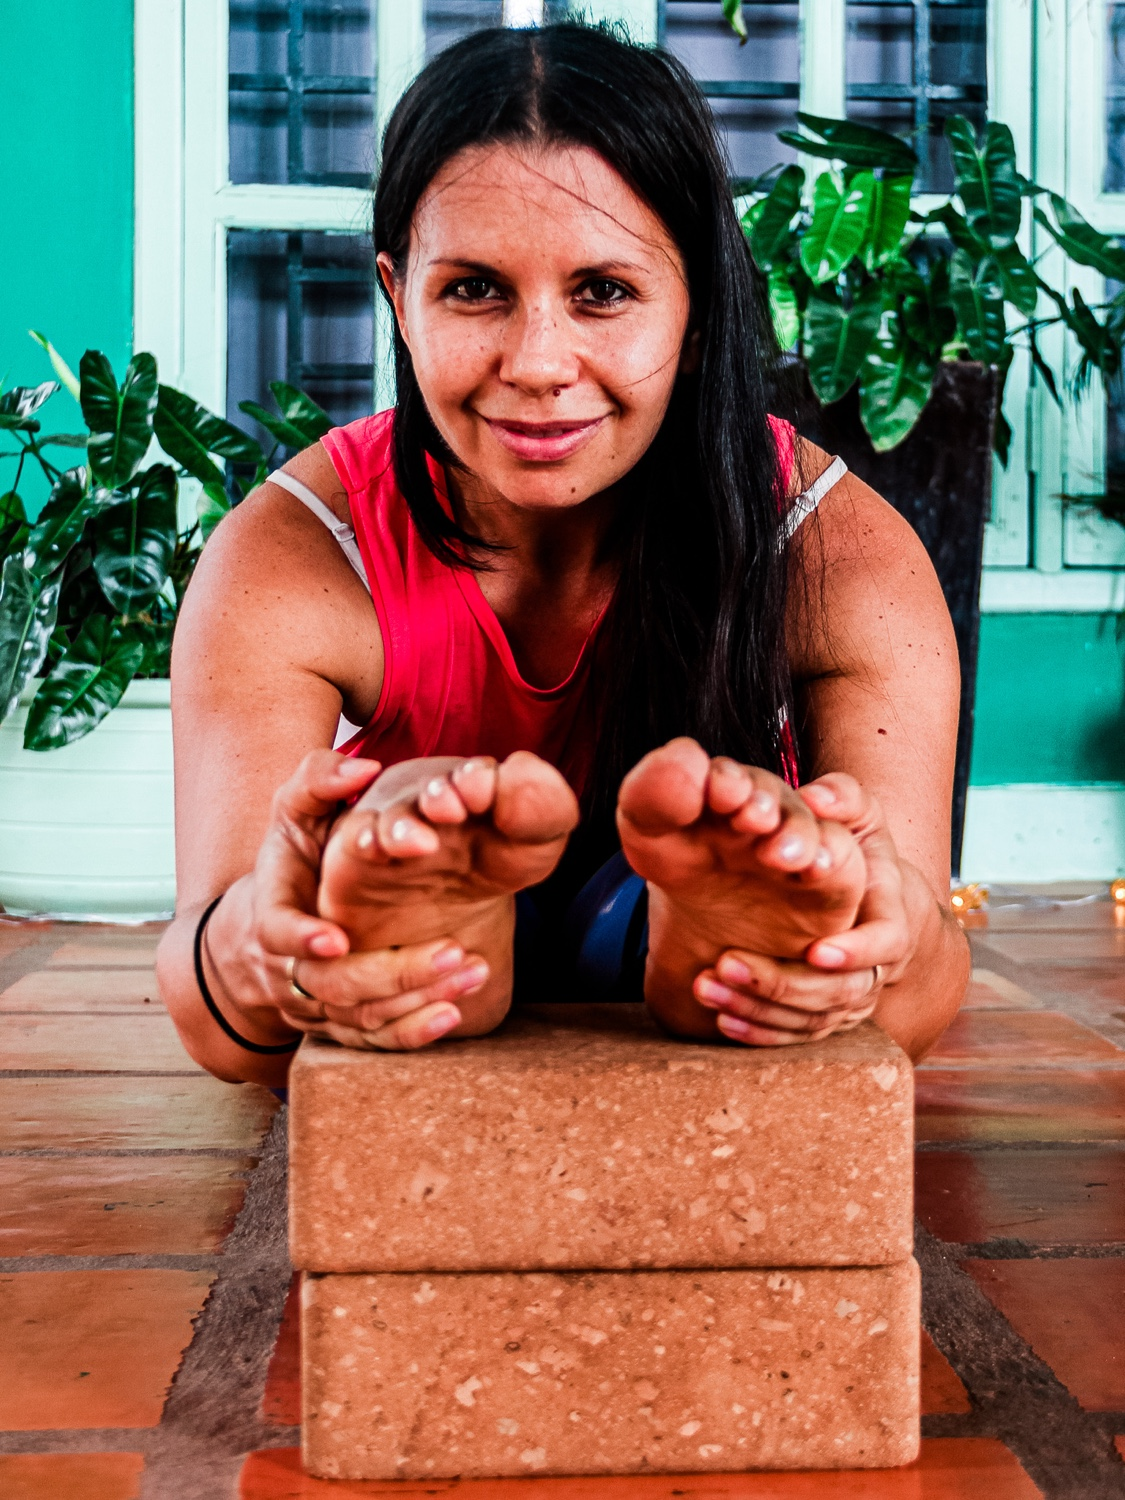 Image of woman with legs outstretched in front of her leaning over and grasping her feet